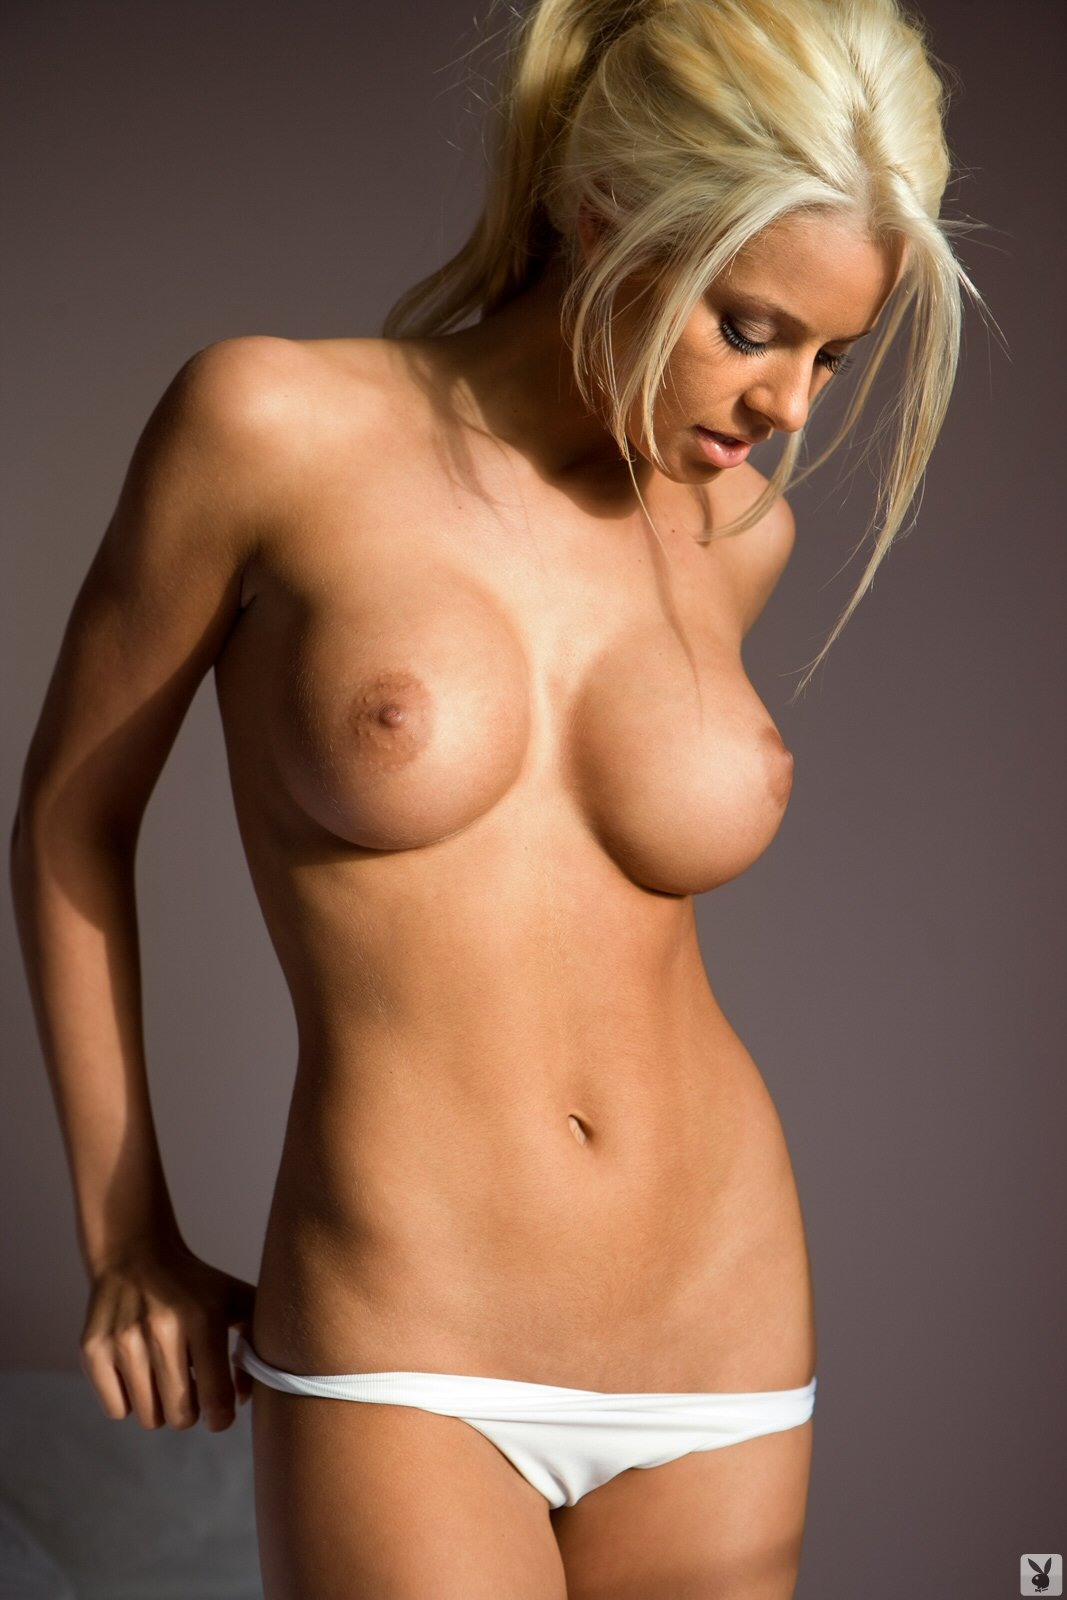 Wwe chicks naked